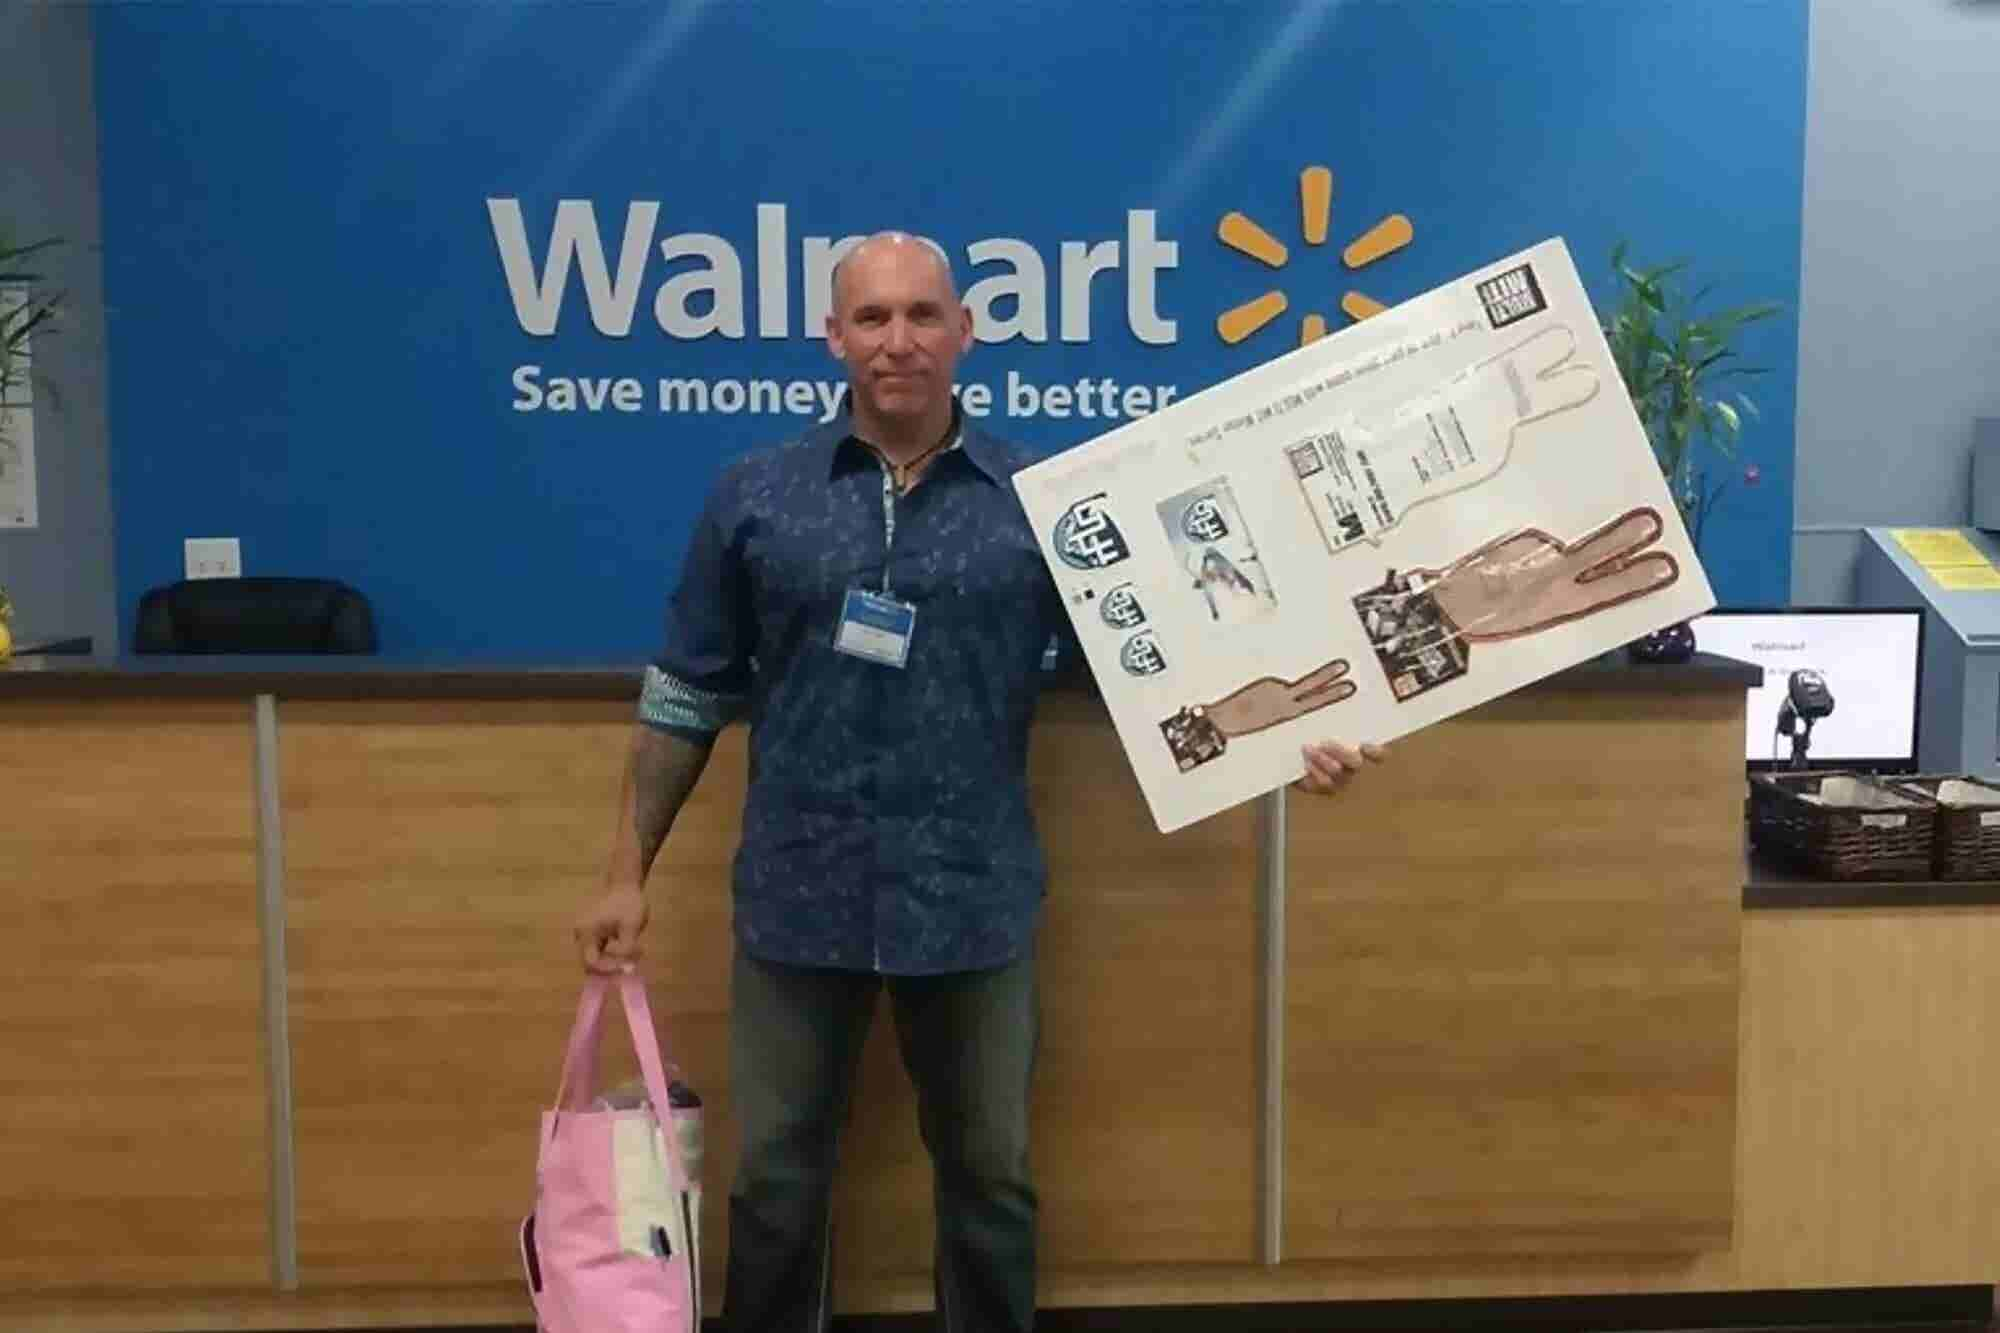 This Entrepreneur Drove Across the Country to Sell His Product to Walm...